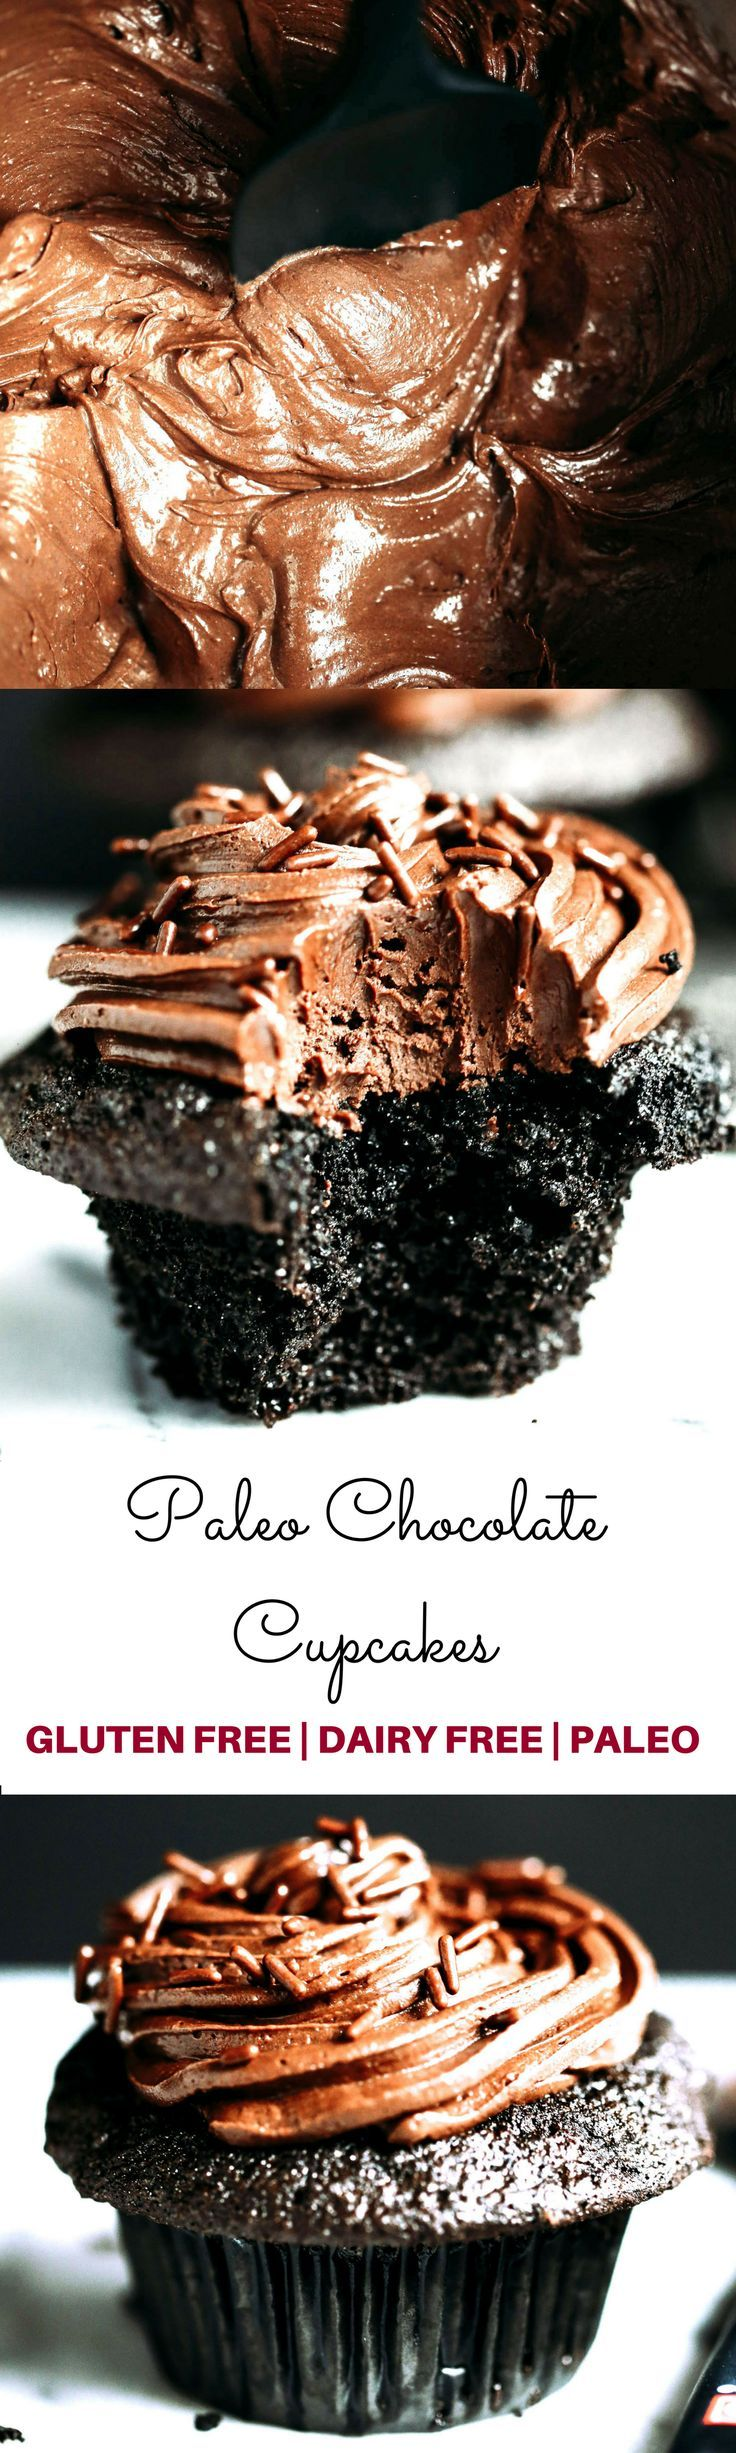 Paleo chocolate cupcakes-moist, but not eggy! These paleo cupcakes have a rich, dark chocolate taste and are covered in a whipped dairy free refined sugar free chocolate frosting! Coconut flour cupcakes. Best easy Paleo cupcakes. Paleo cupcakes recipes. G